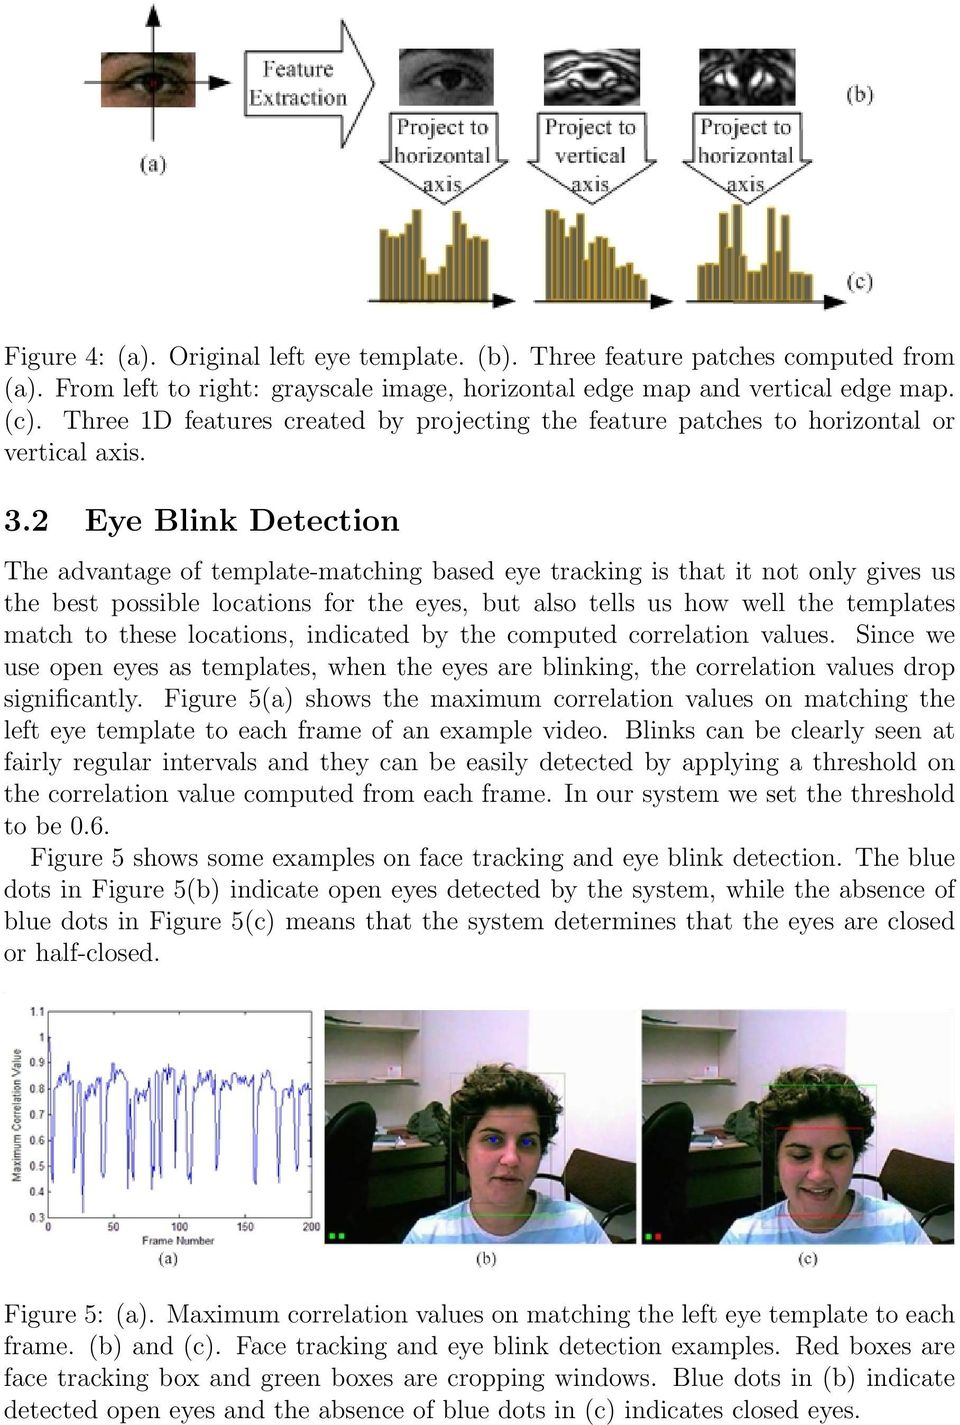 2 Eye Blink Detection The advantage of template-matching based eye tracking is that it not only gives us the best possible locations for the eyes, but also tells us how well the templates match to